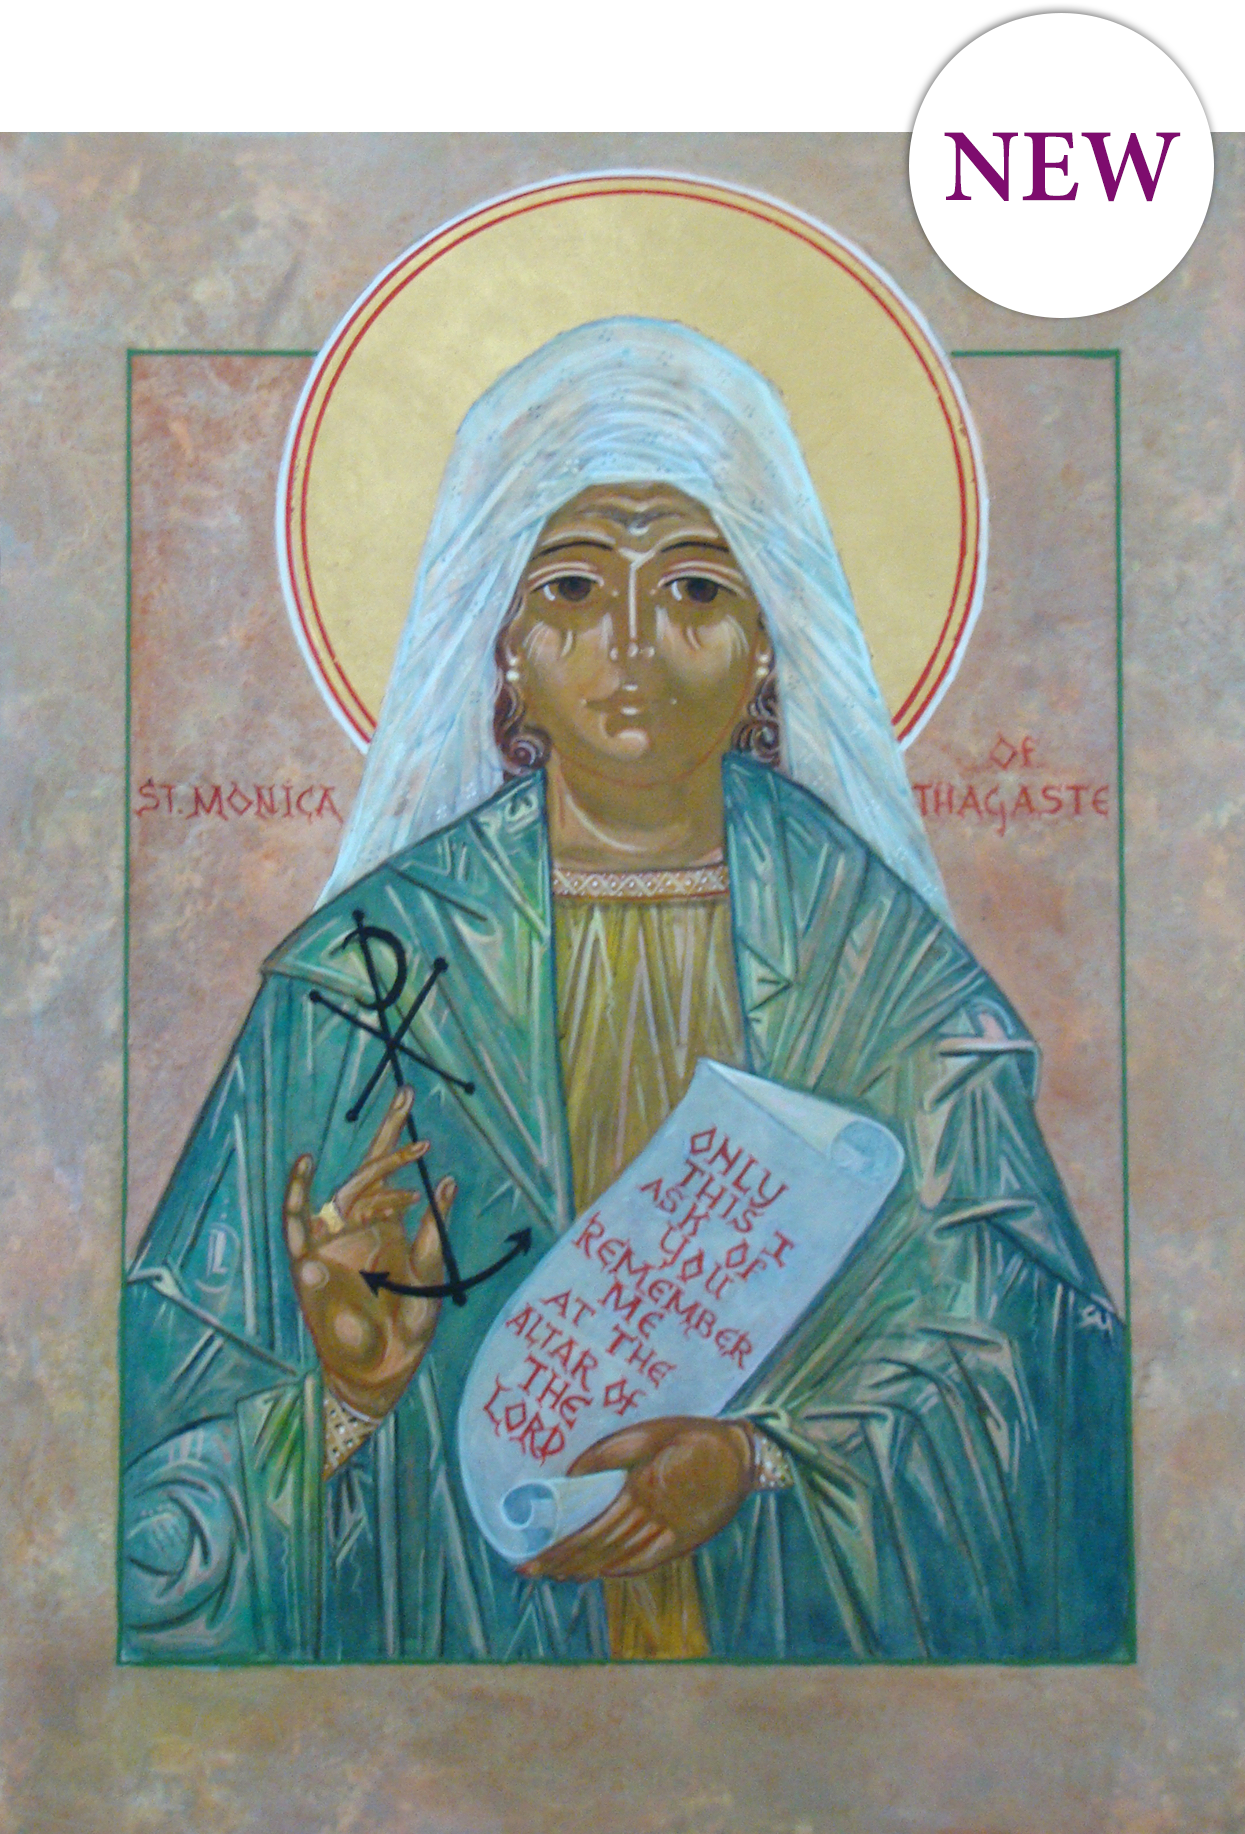 """SAINT MONICA SYMPATHY CARD   Suggested donation: $10.00 Size: 5 x 7   This new sympathy Mass card features an icon of Saint Monica by    Fr. Richard G. Cannuli, O.S.A.    and the words of Saint Monica at the time of her death, """"Only this I ask of you, remember me at the altar of the Lord."""""""